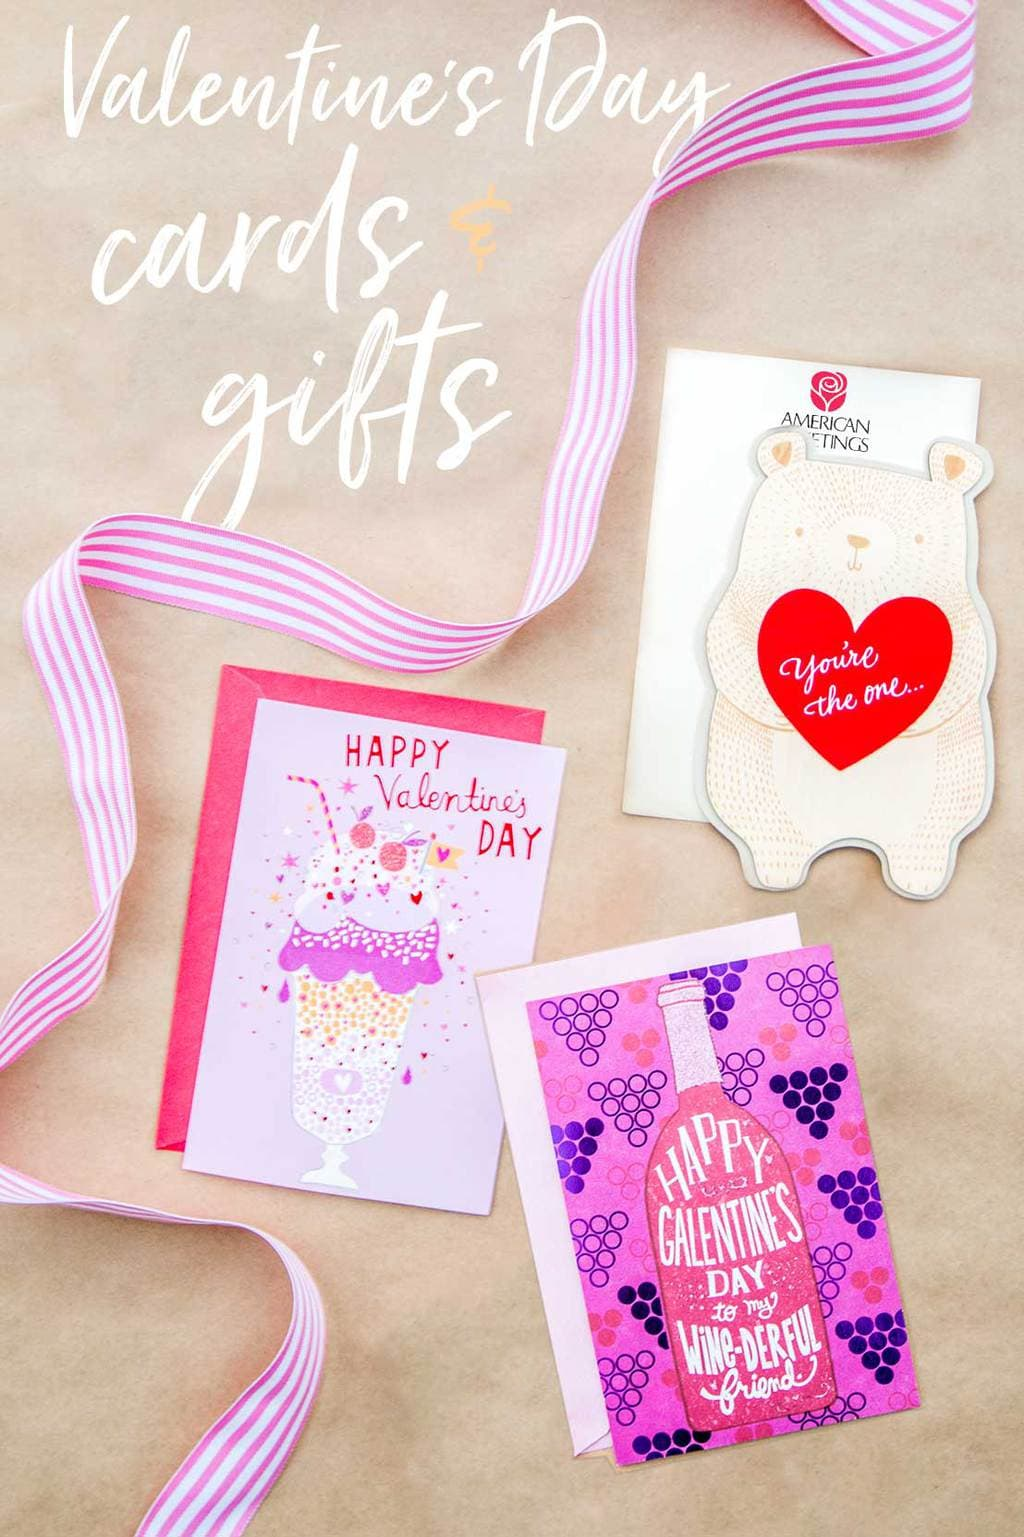 Perfect valentines day card gift pairings thou swell valentines day is right around the corner and i have a few ideas for thoughtful card and gift pairings for any loved one in your life m4hsunfo Gallery